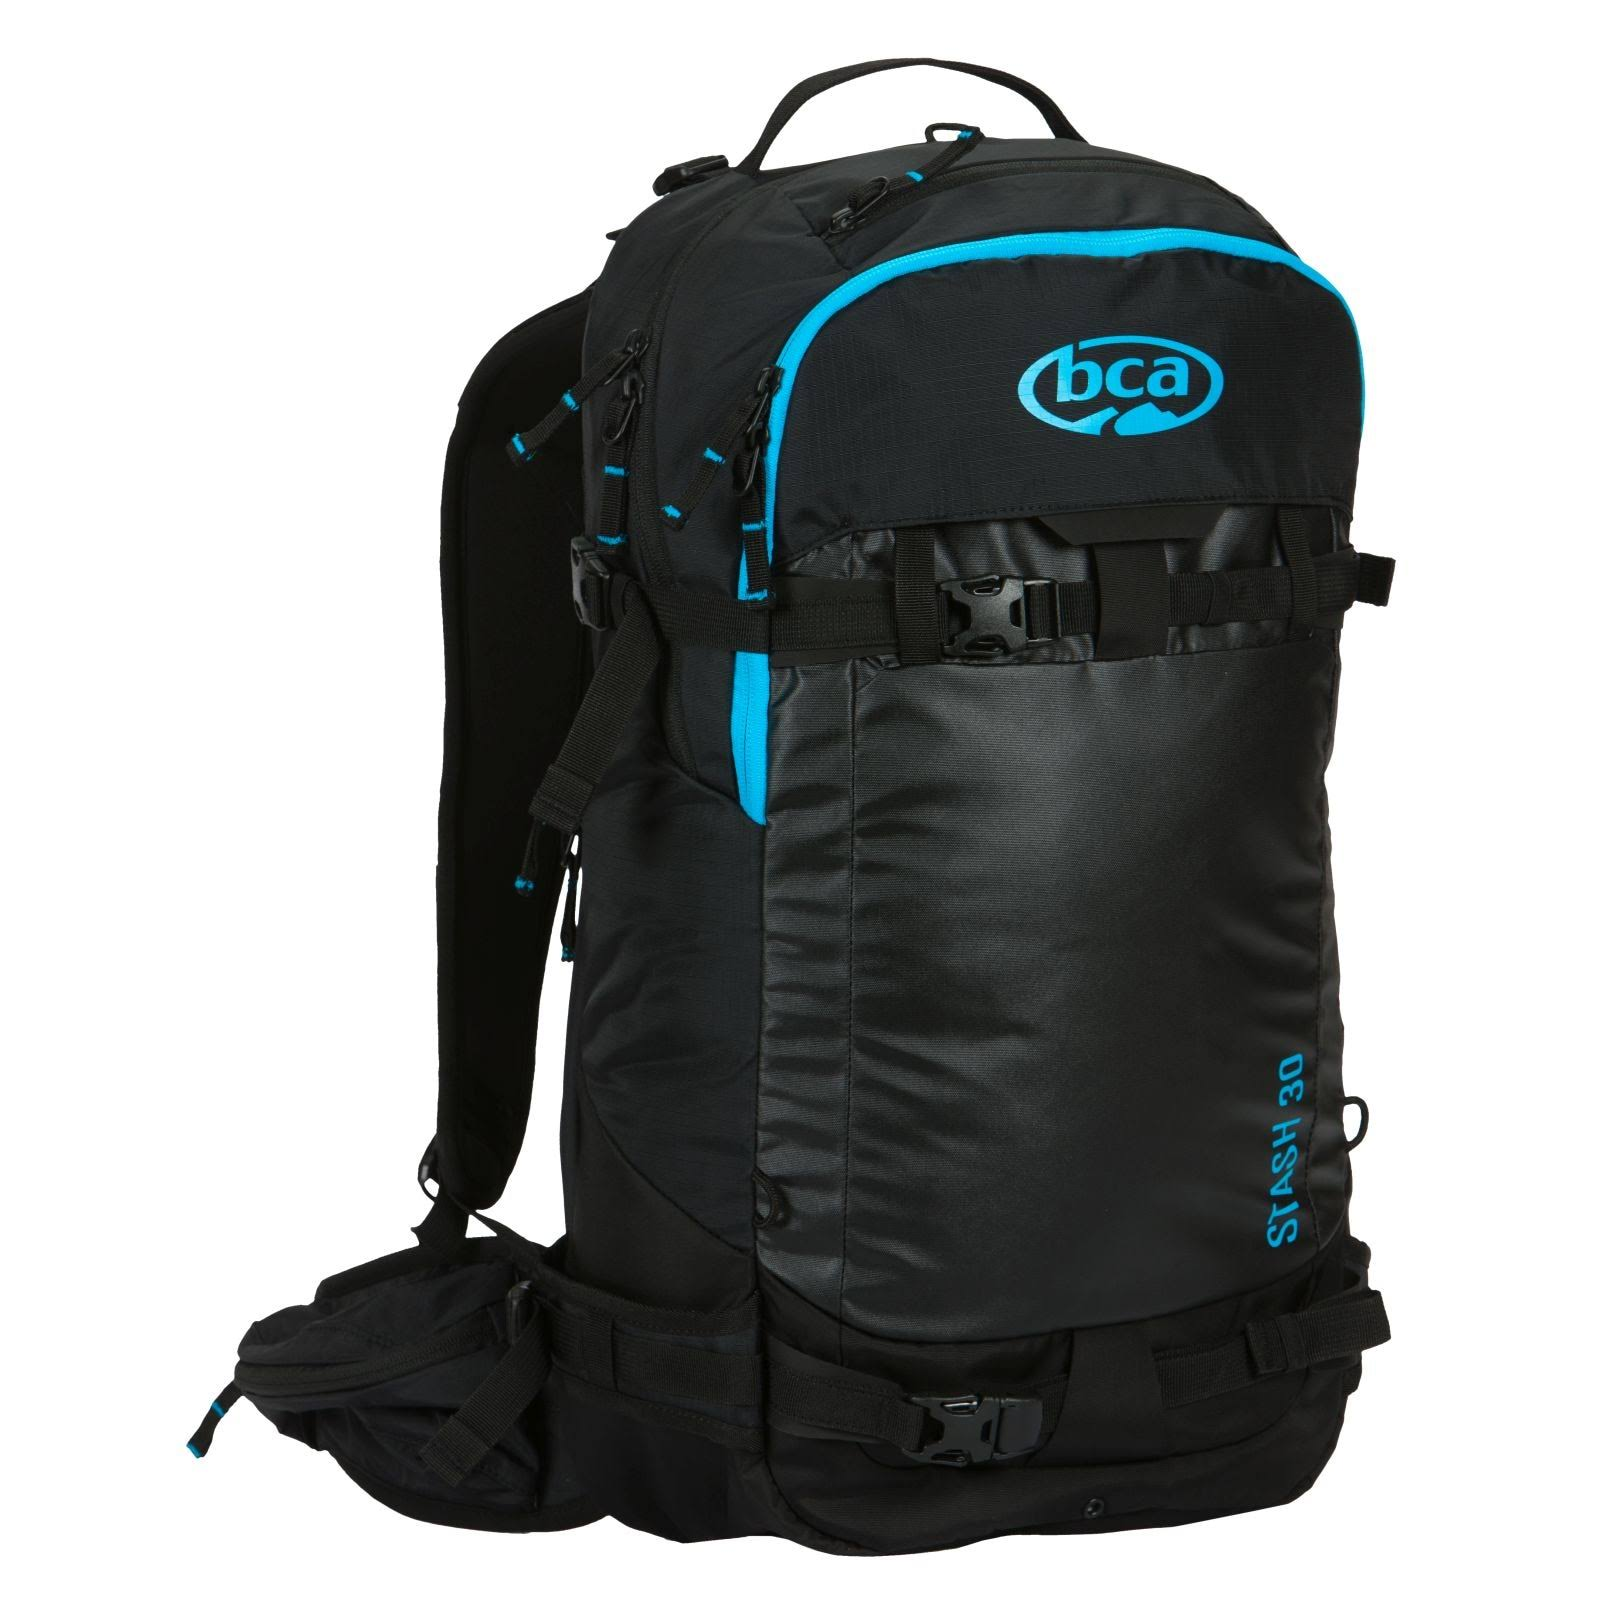 Backcountry Access Stash 30 Backpack Black C1917002010